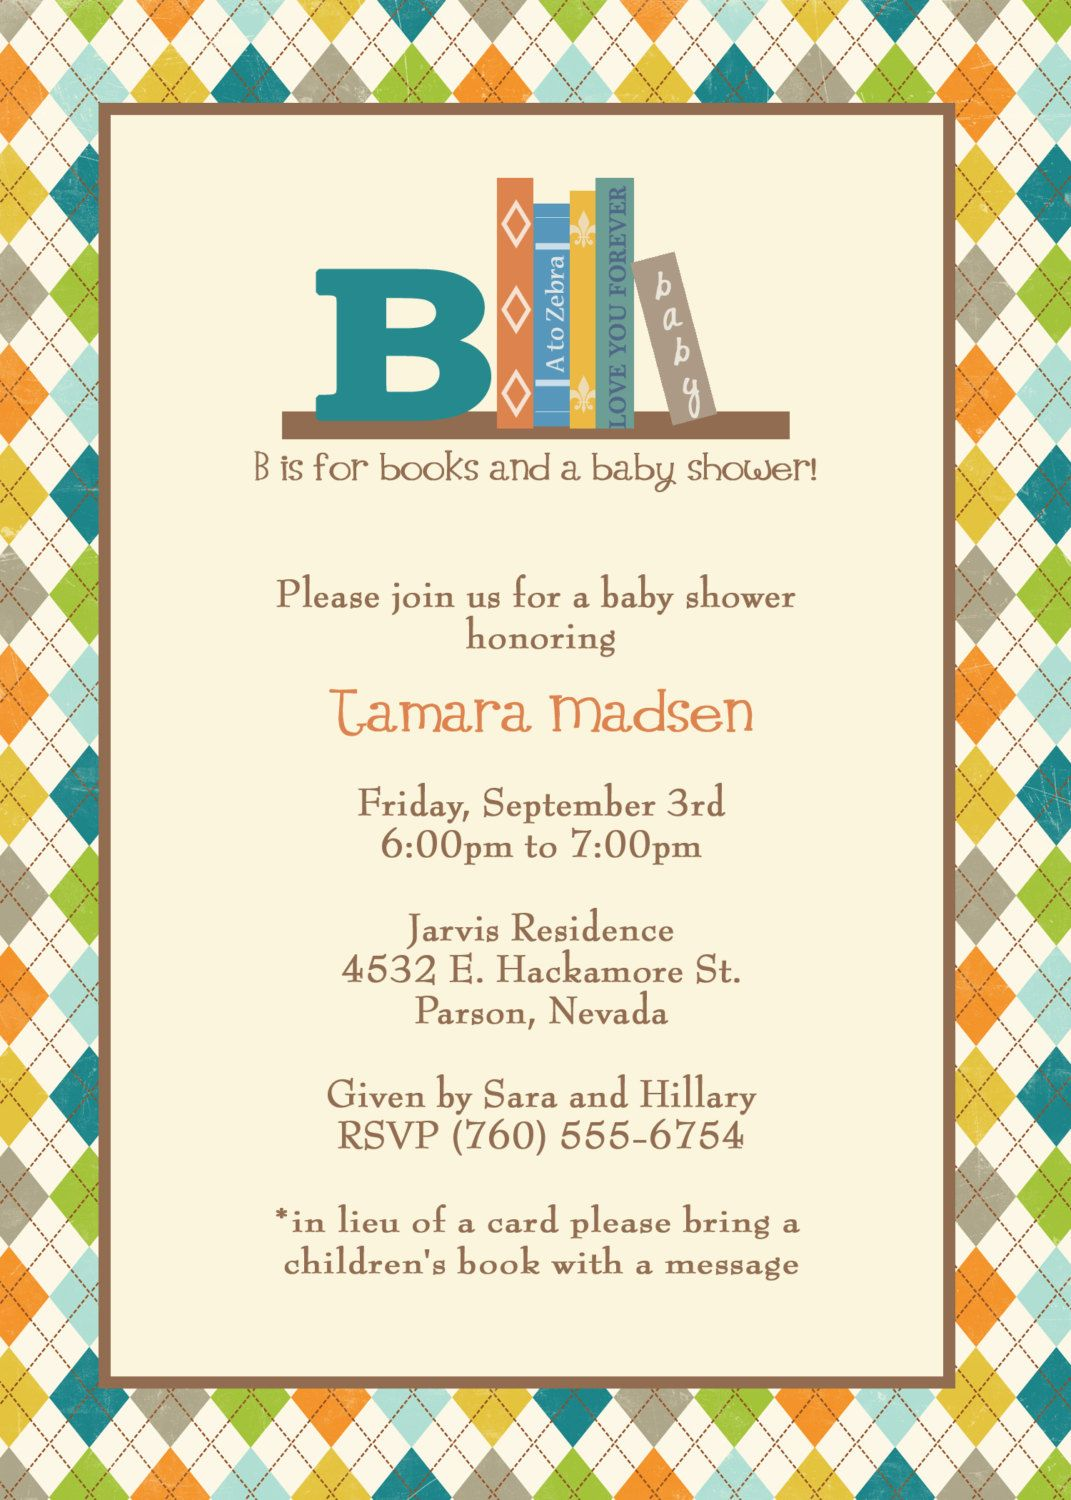 Charming In Lieu Of A Card Bring A Book Baby Shower Part - 3: Book Baby Shower Invite, In Lieu Of A Card Please Bring A Childrenu0027s Book  With